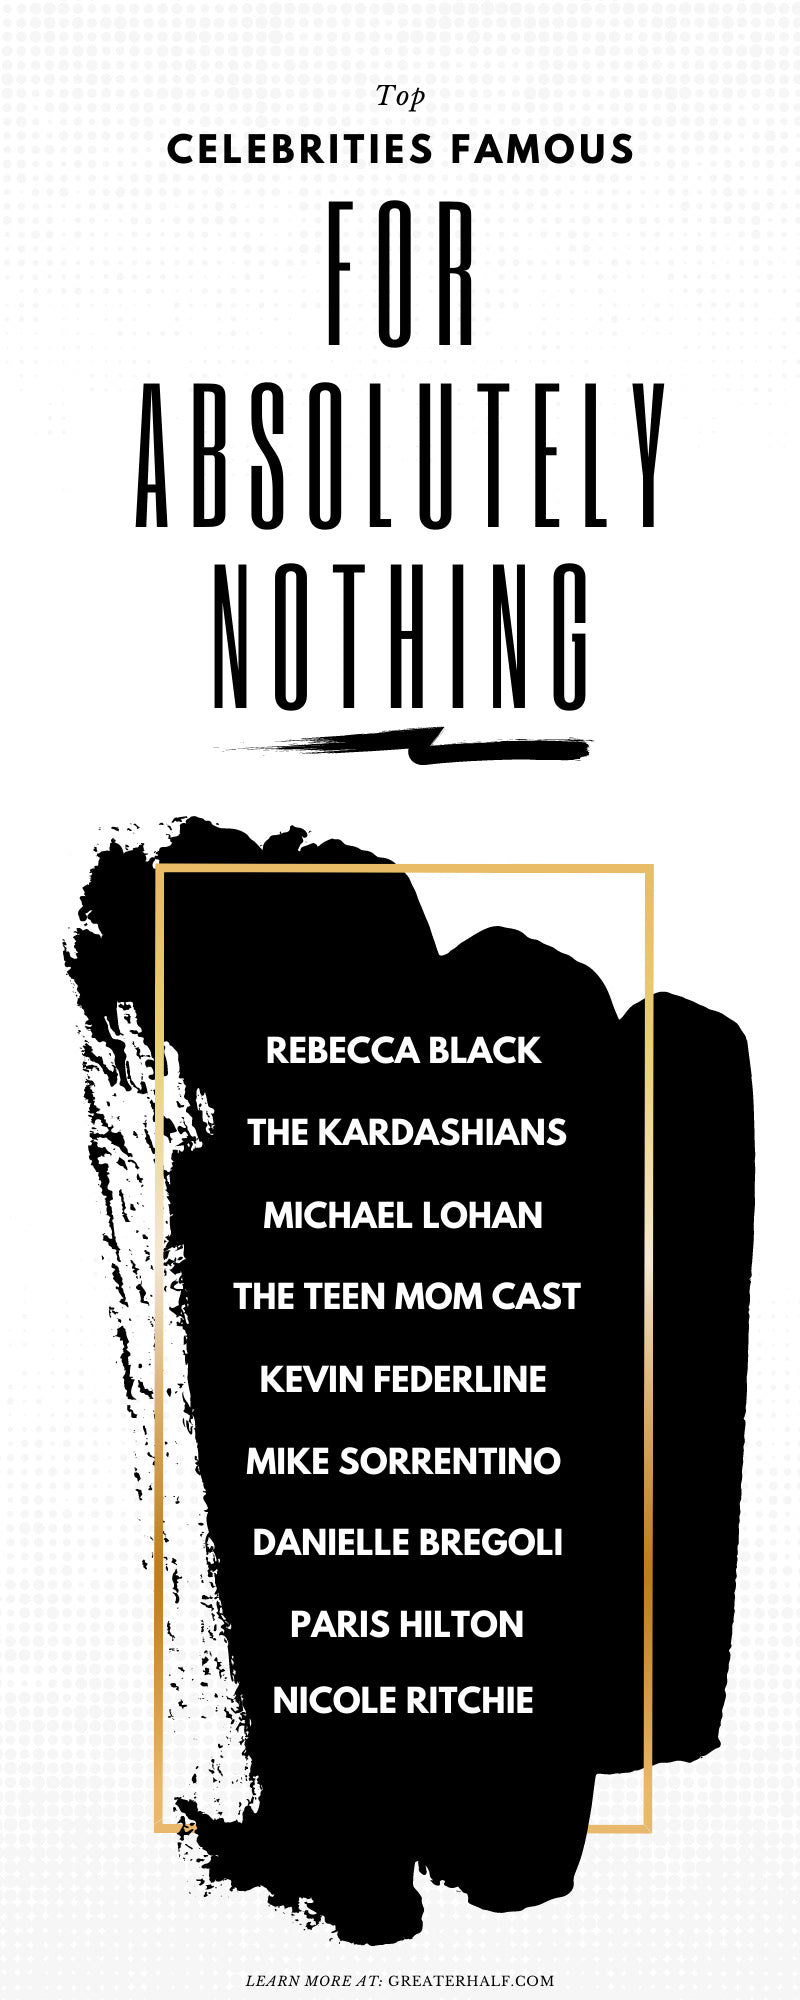 Top Celebrities Famous for Nothing